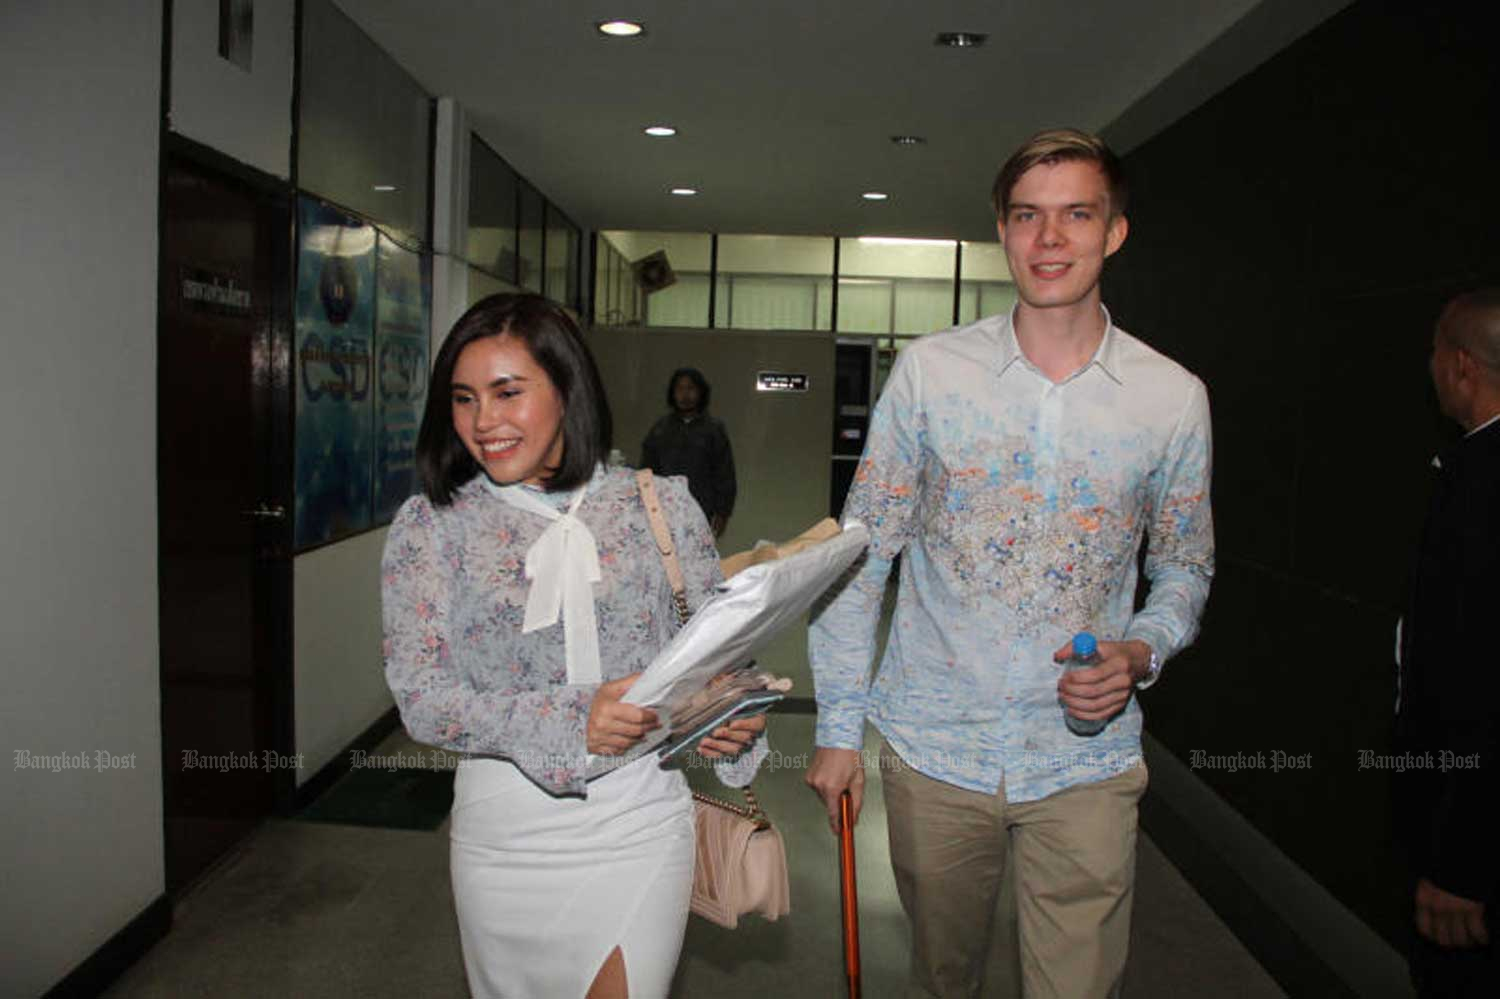 Finnish investor Aarni Otava Saarimaa and his Thai business partner Chonnikan Kaeosali arrive at the Crime Suppression Division in Bangkok in August last year over allegations of a bitcoin fraud worth 979 million baht. (Photo by Wassayos Ngamkham)